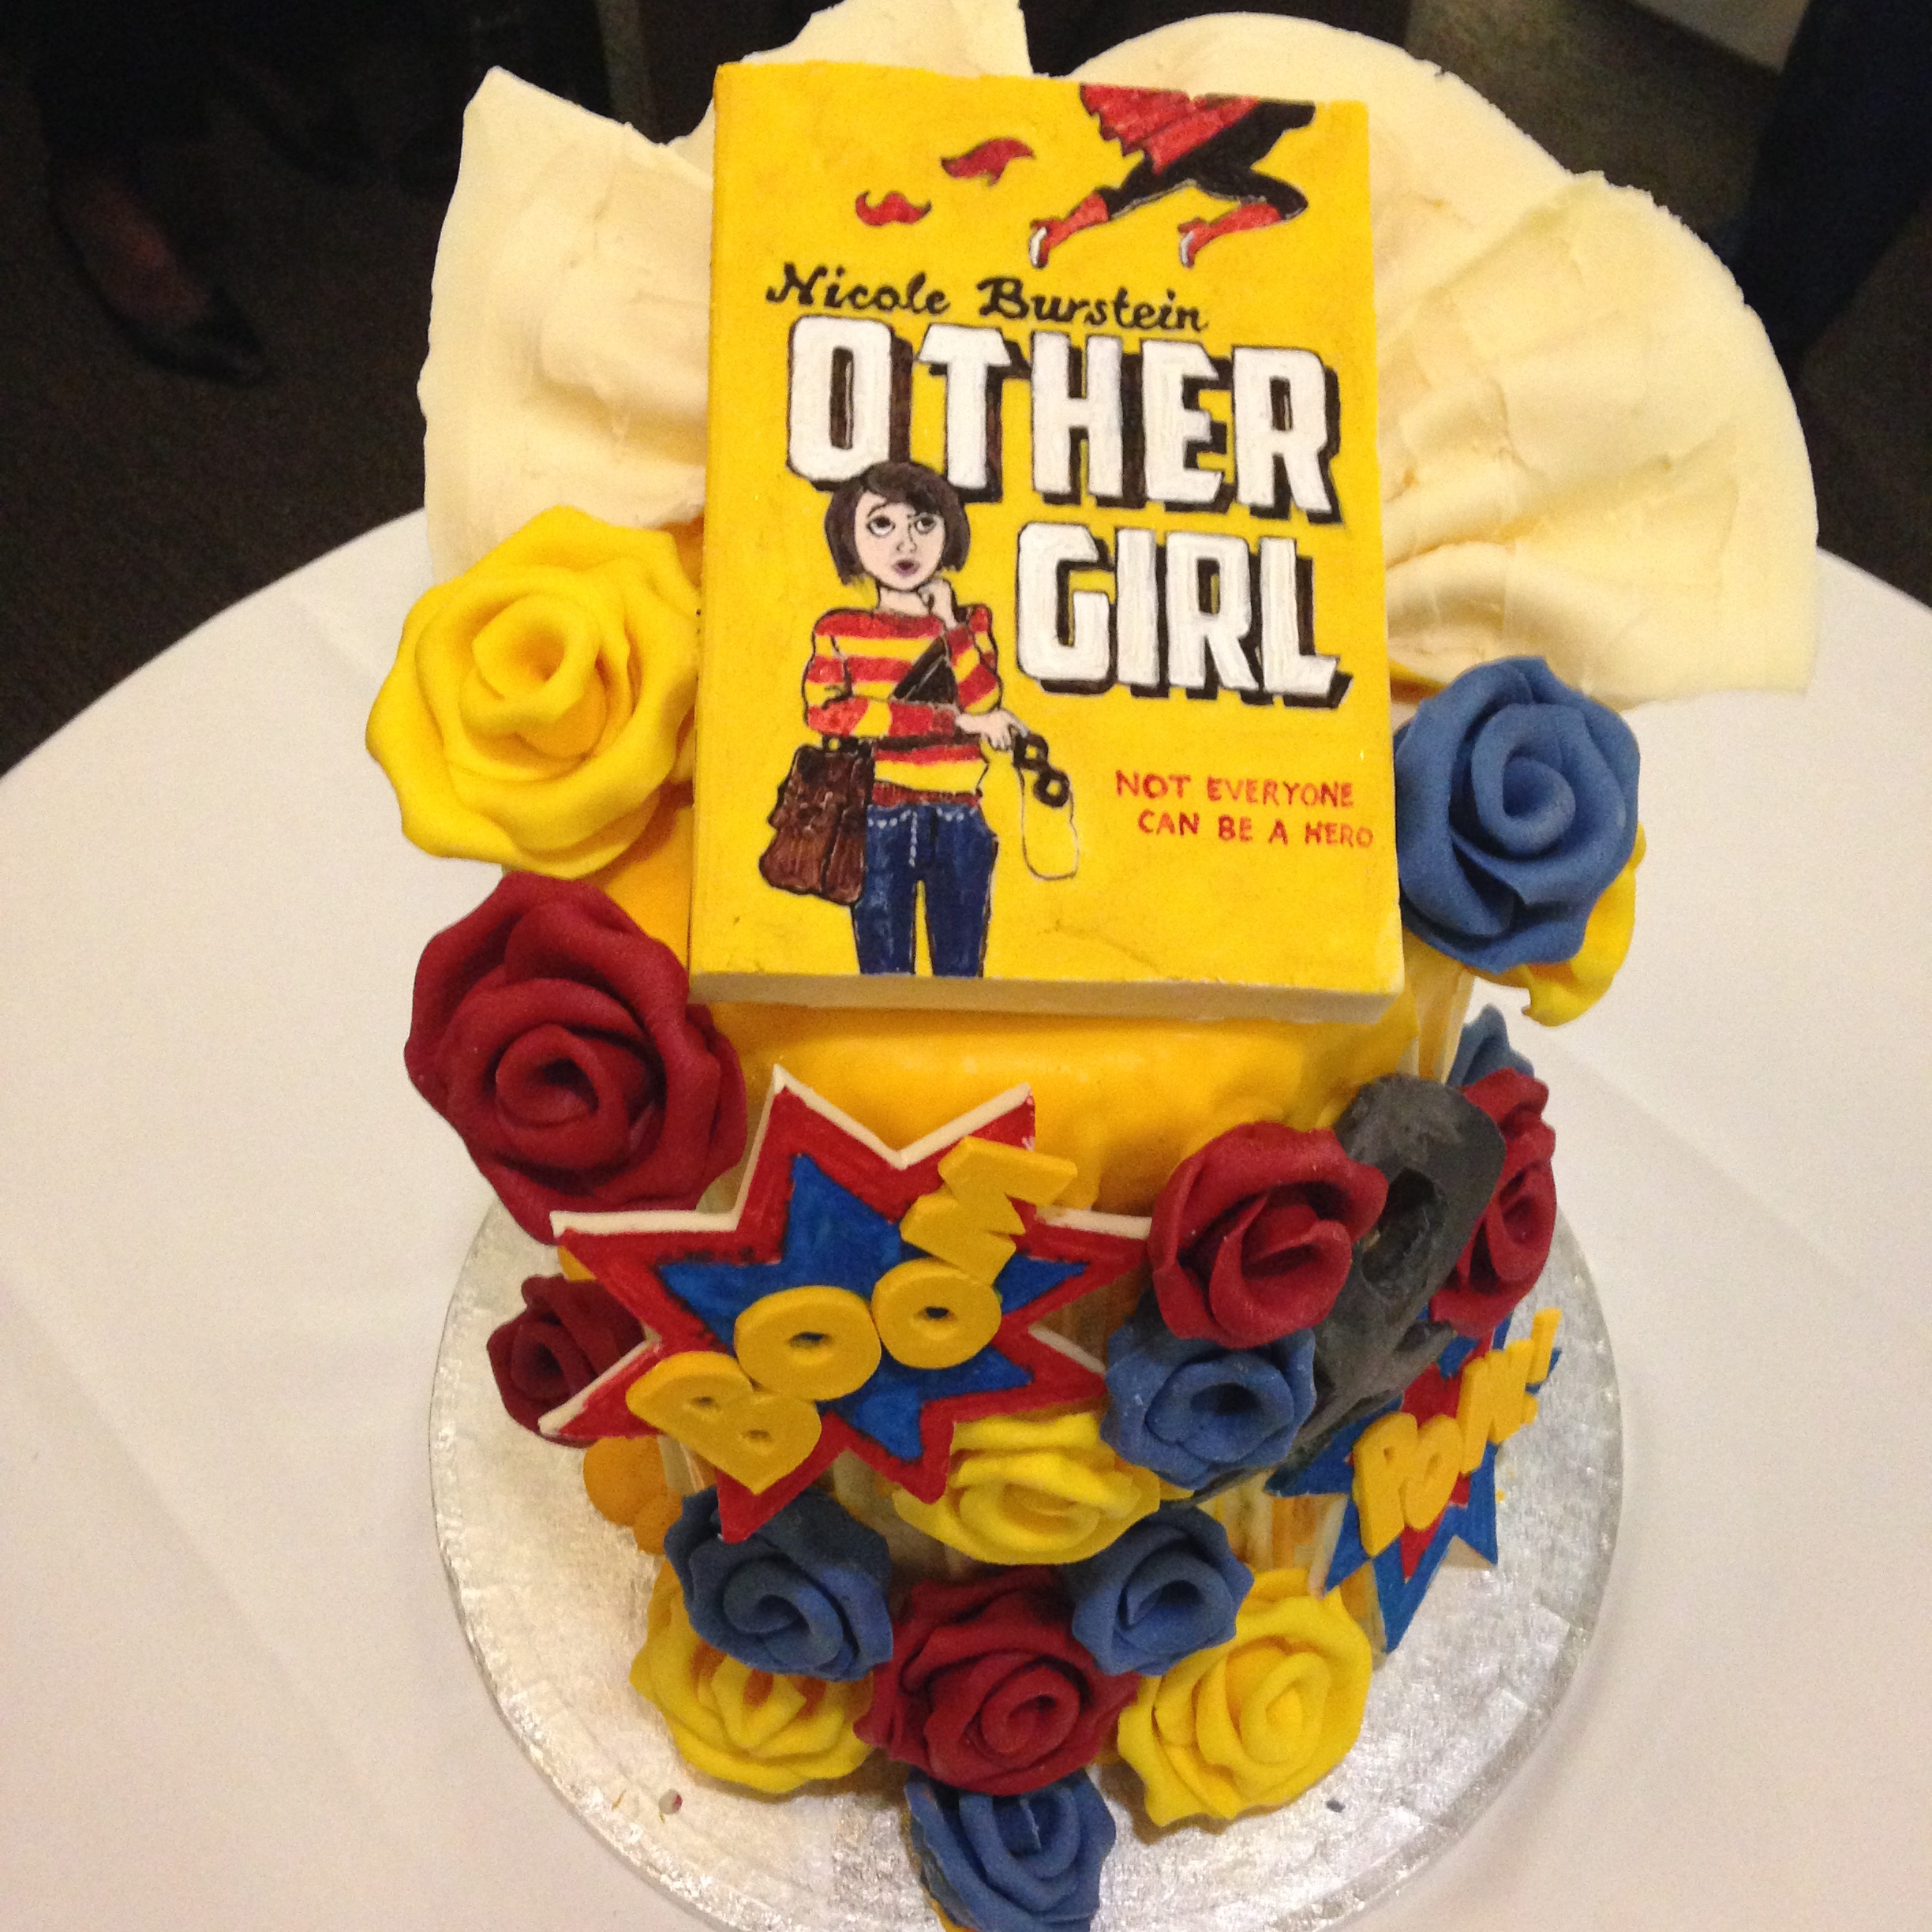 Podcast: Nicole Burstein discusses Othergirl